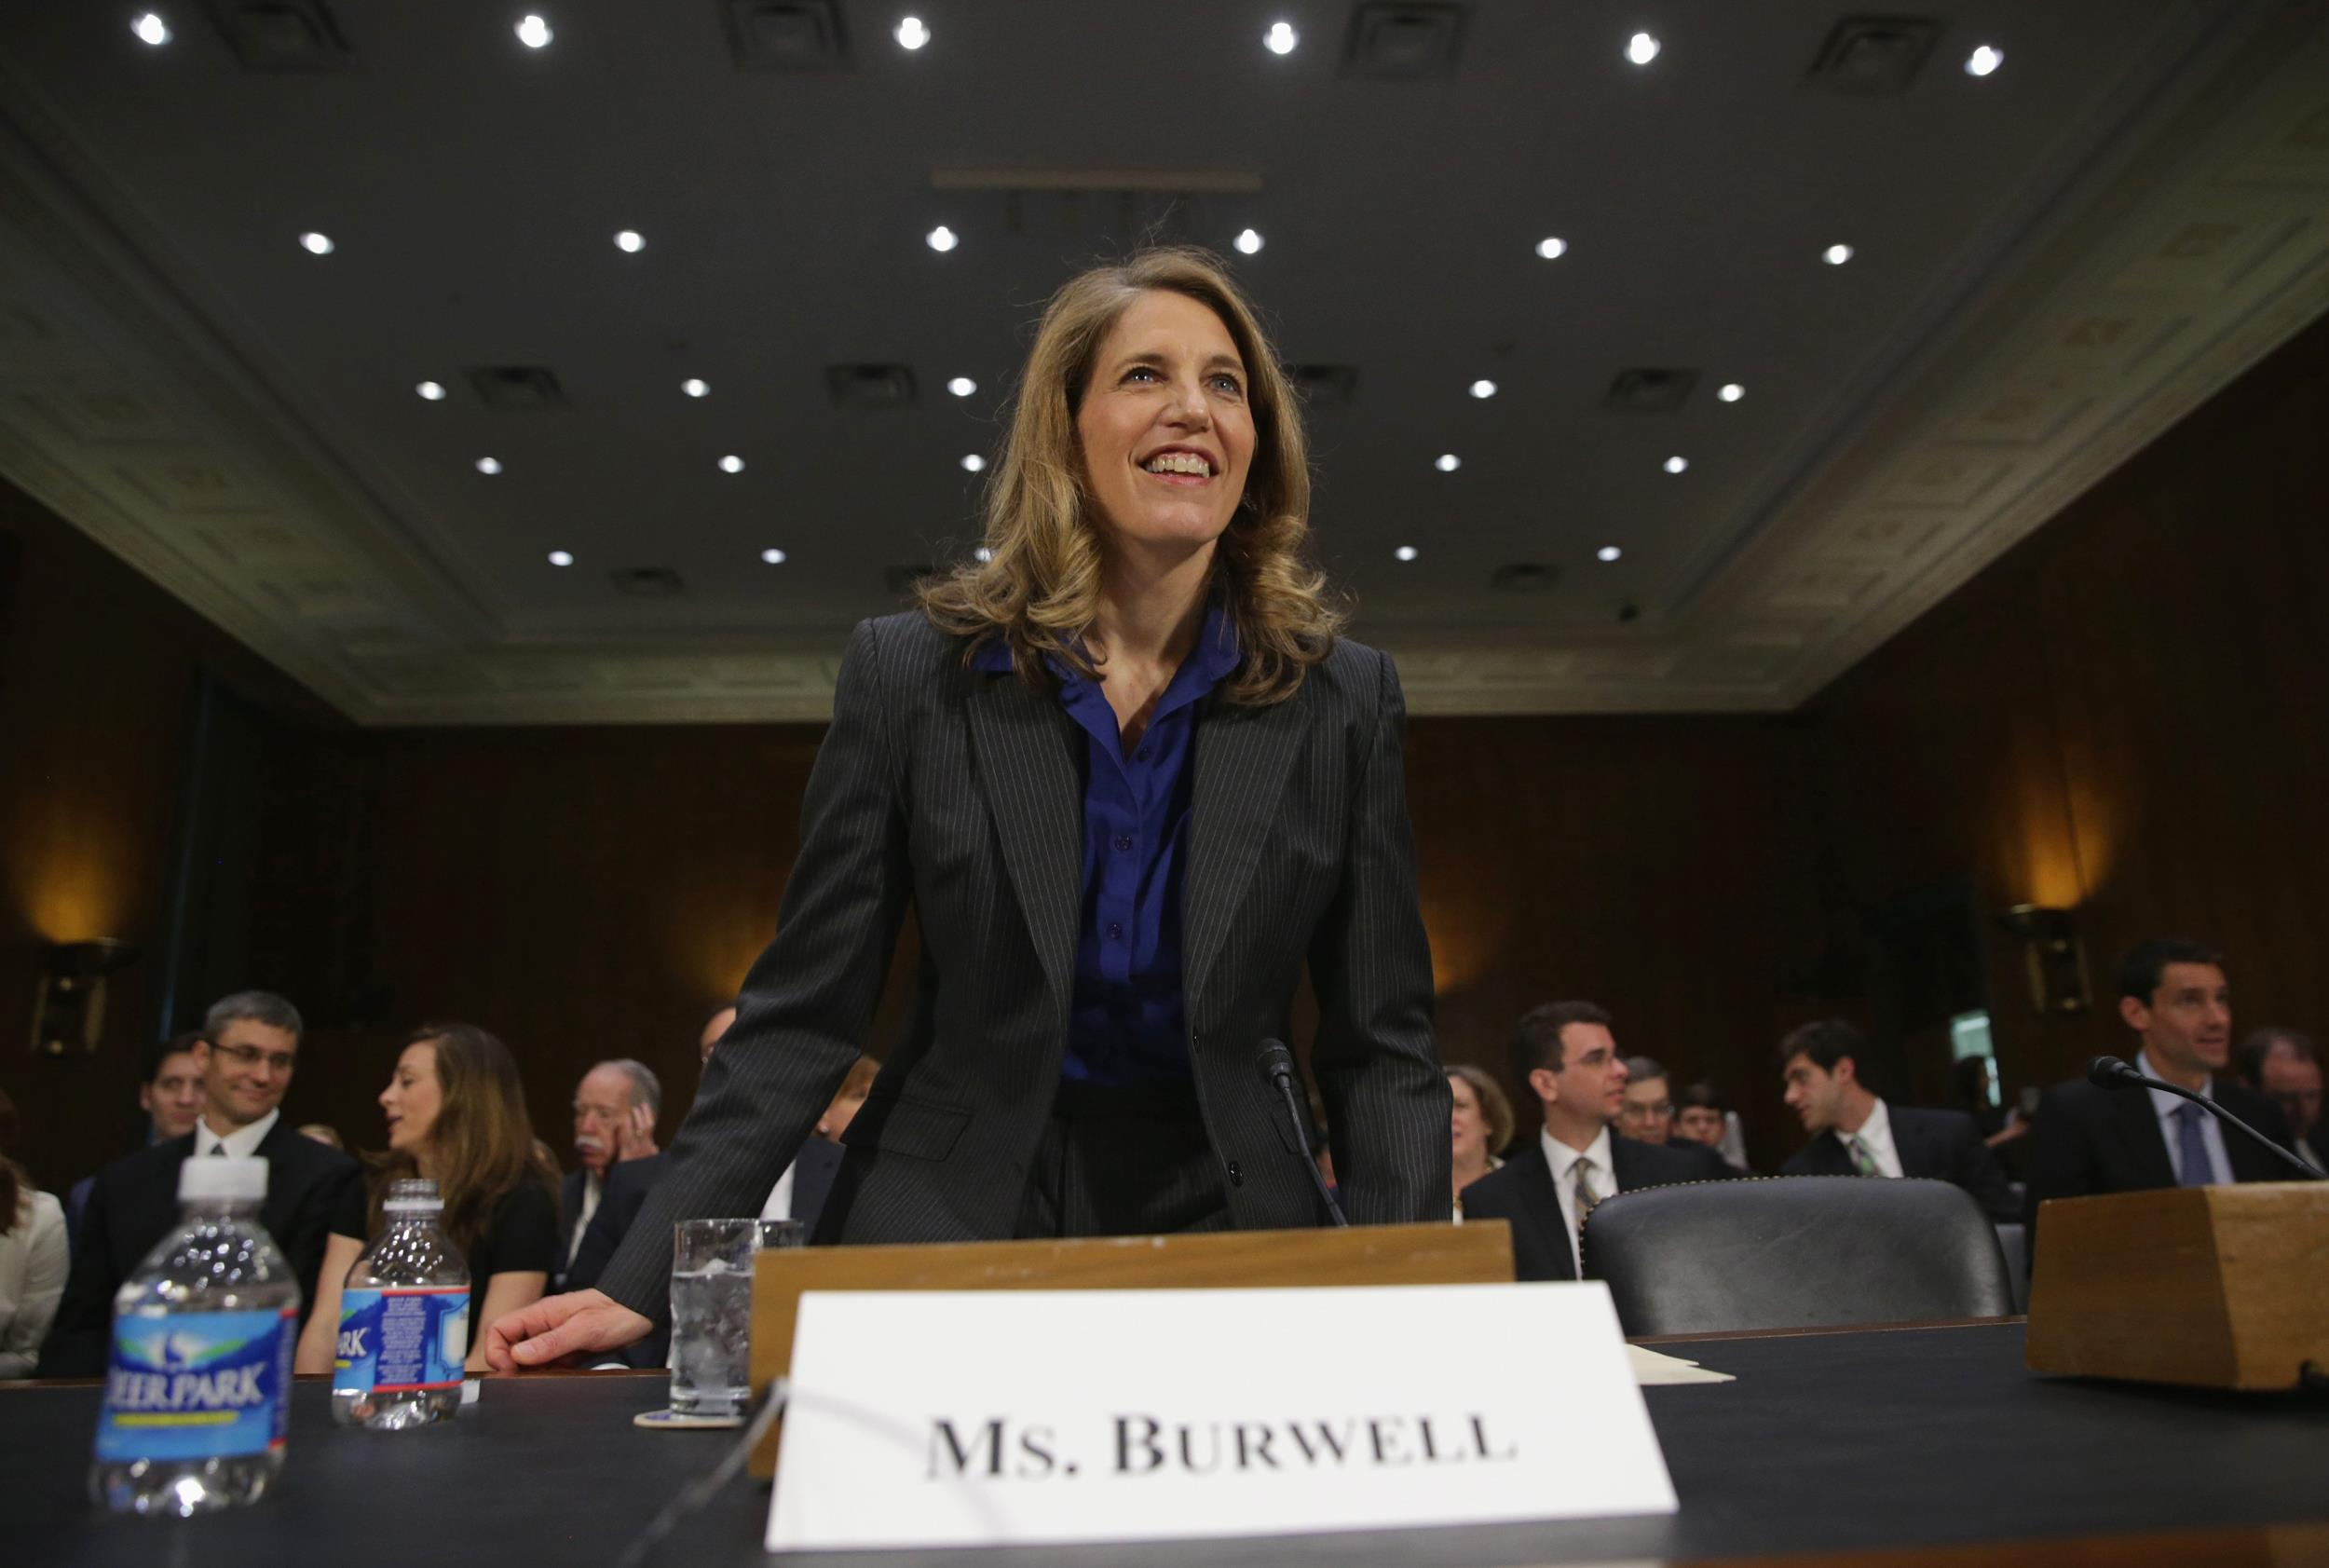 Image: Senate Health Committee Holds Confirmation Hearing For Sylvia Burwell To Lead The Health And Human Services Dept.